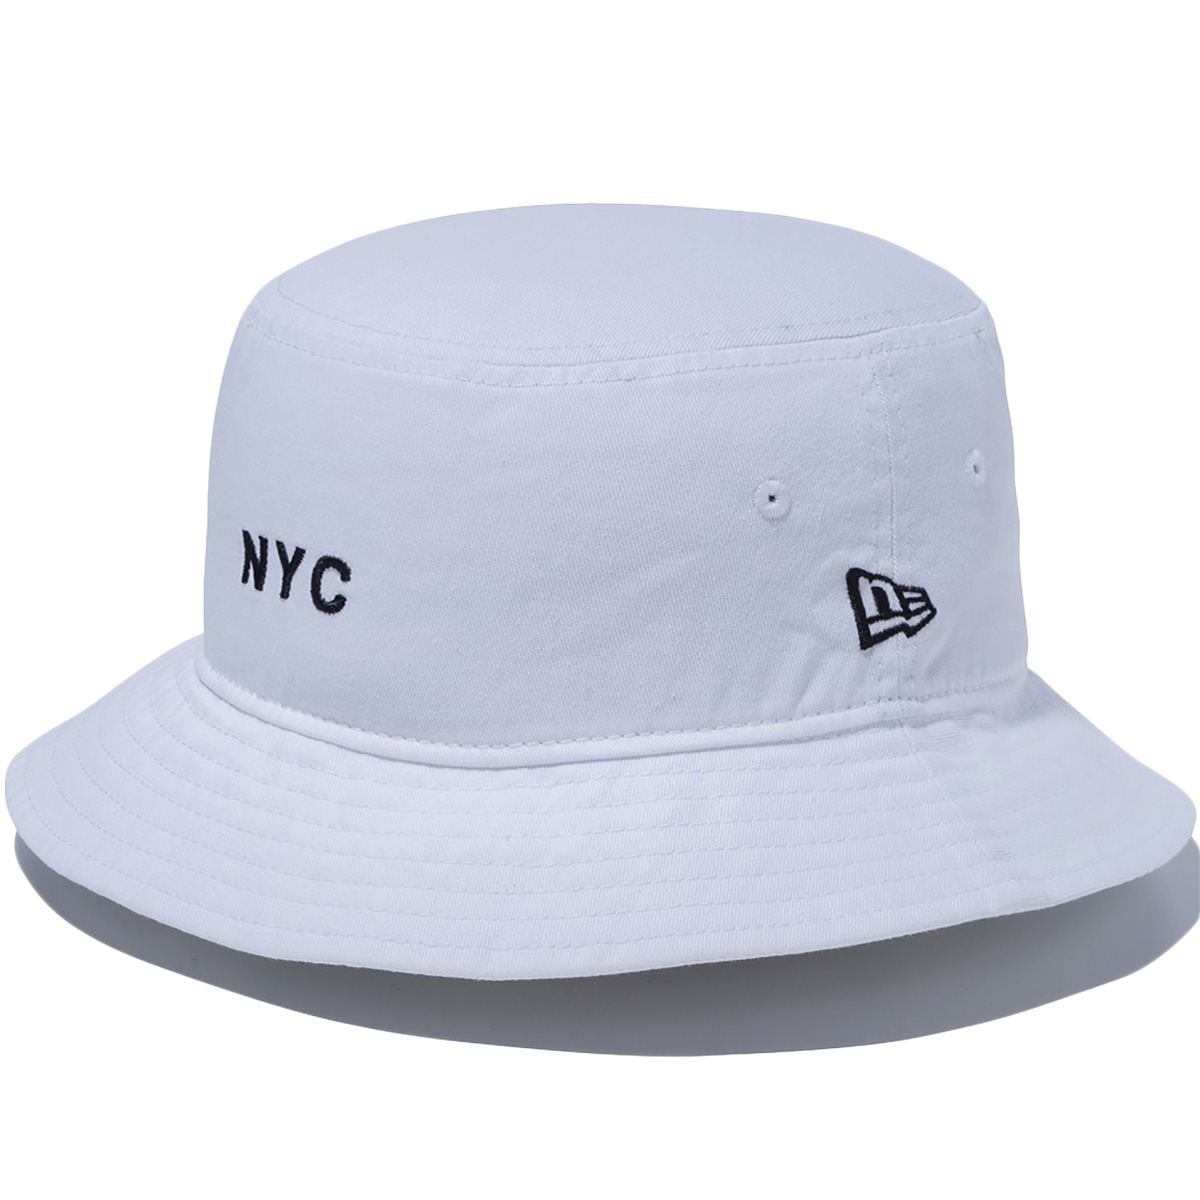 BUCKET01 NYC MINI ハット